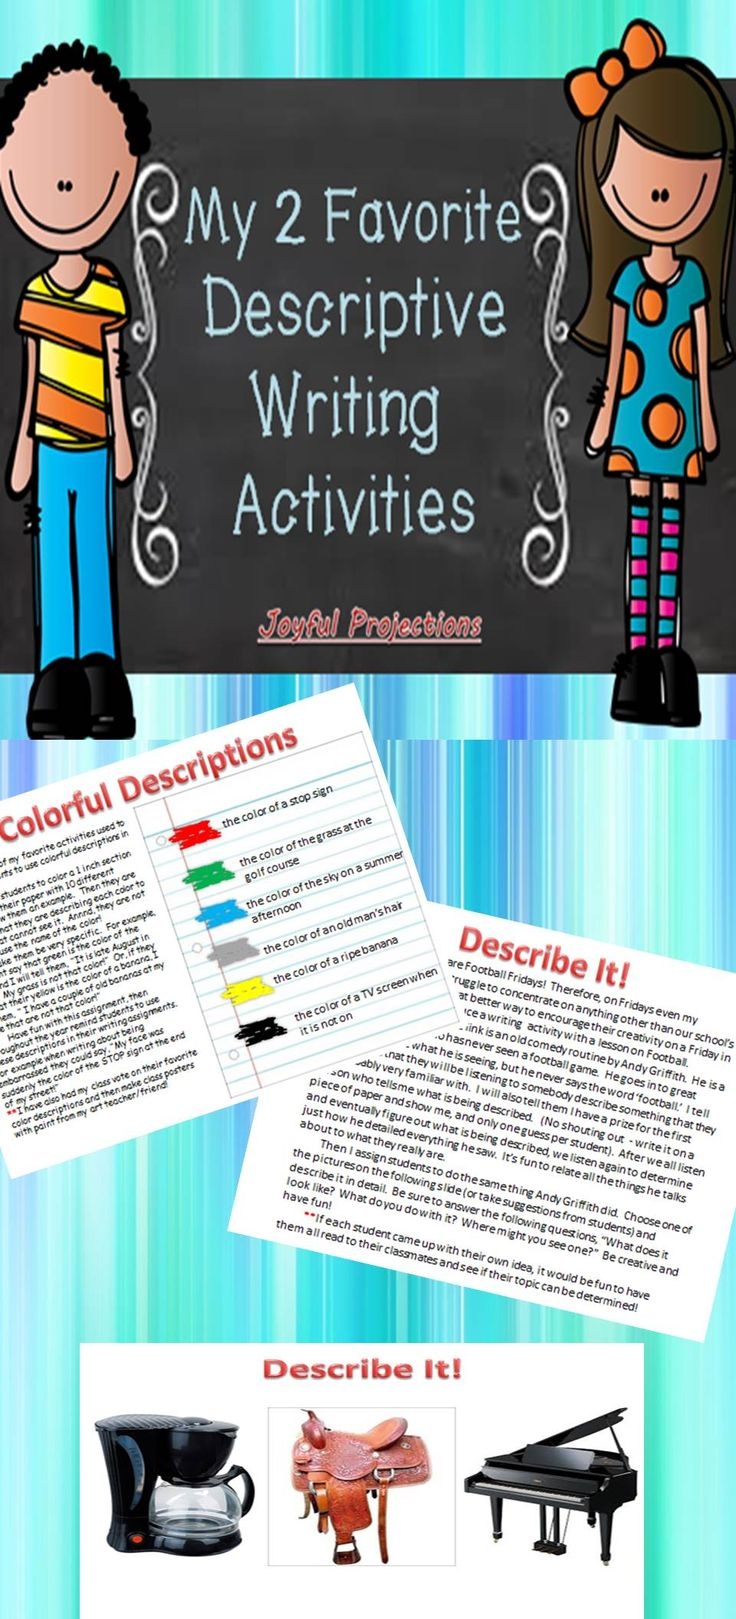 descriptive writing activities Descriptive writing worksheets english lessons for kids - videos, printables, games, online tests teach kids with an engaging blended english program a multi-level.